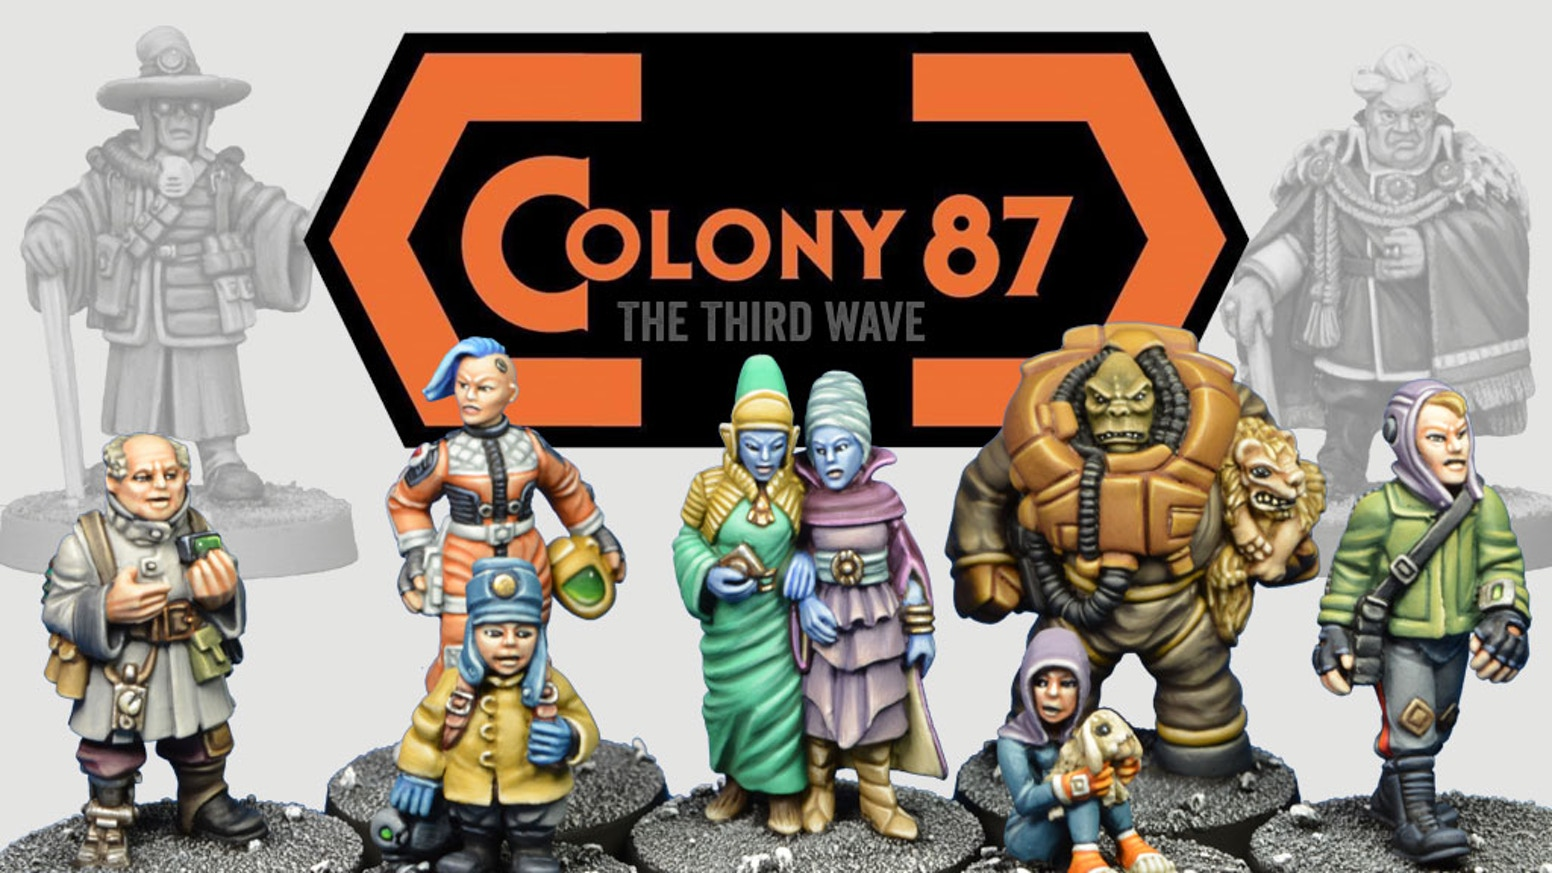 A third set of six 28mm Sci-Fi civilians designed for retro and modern sci-fi wargaming